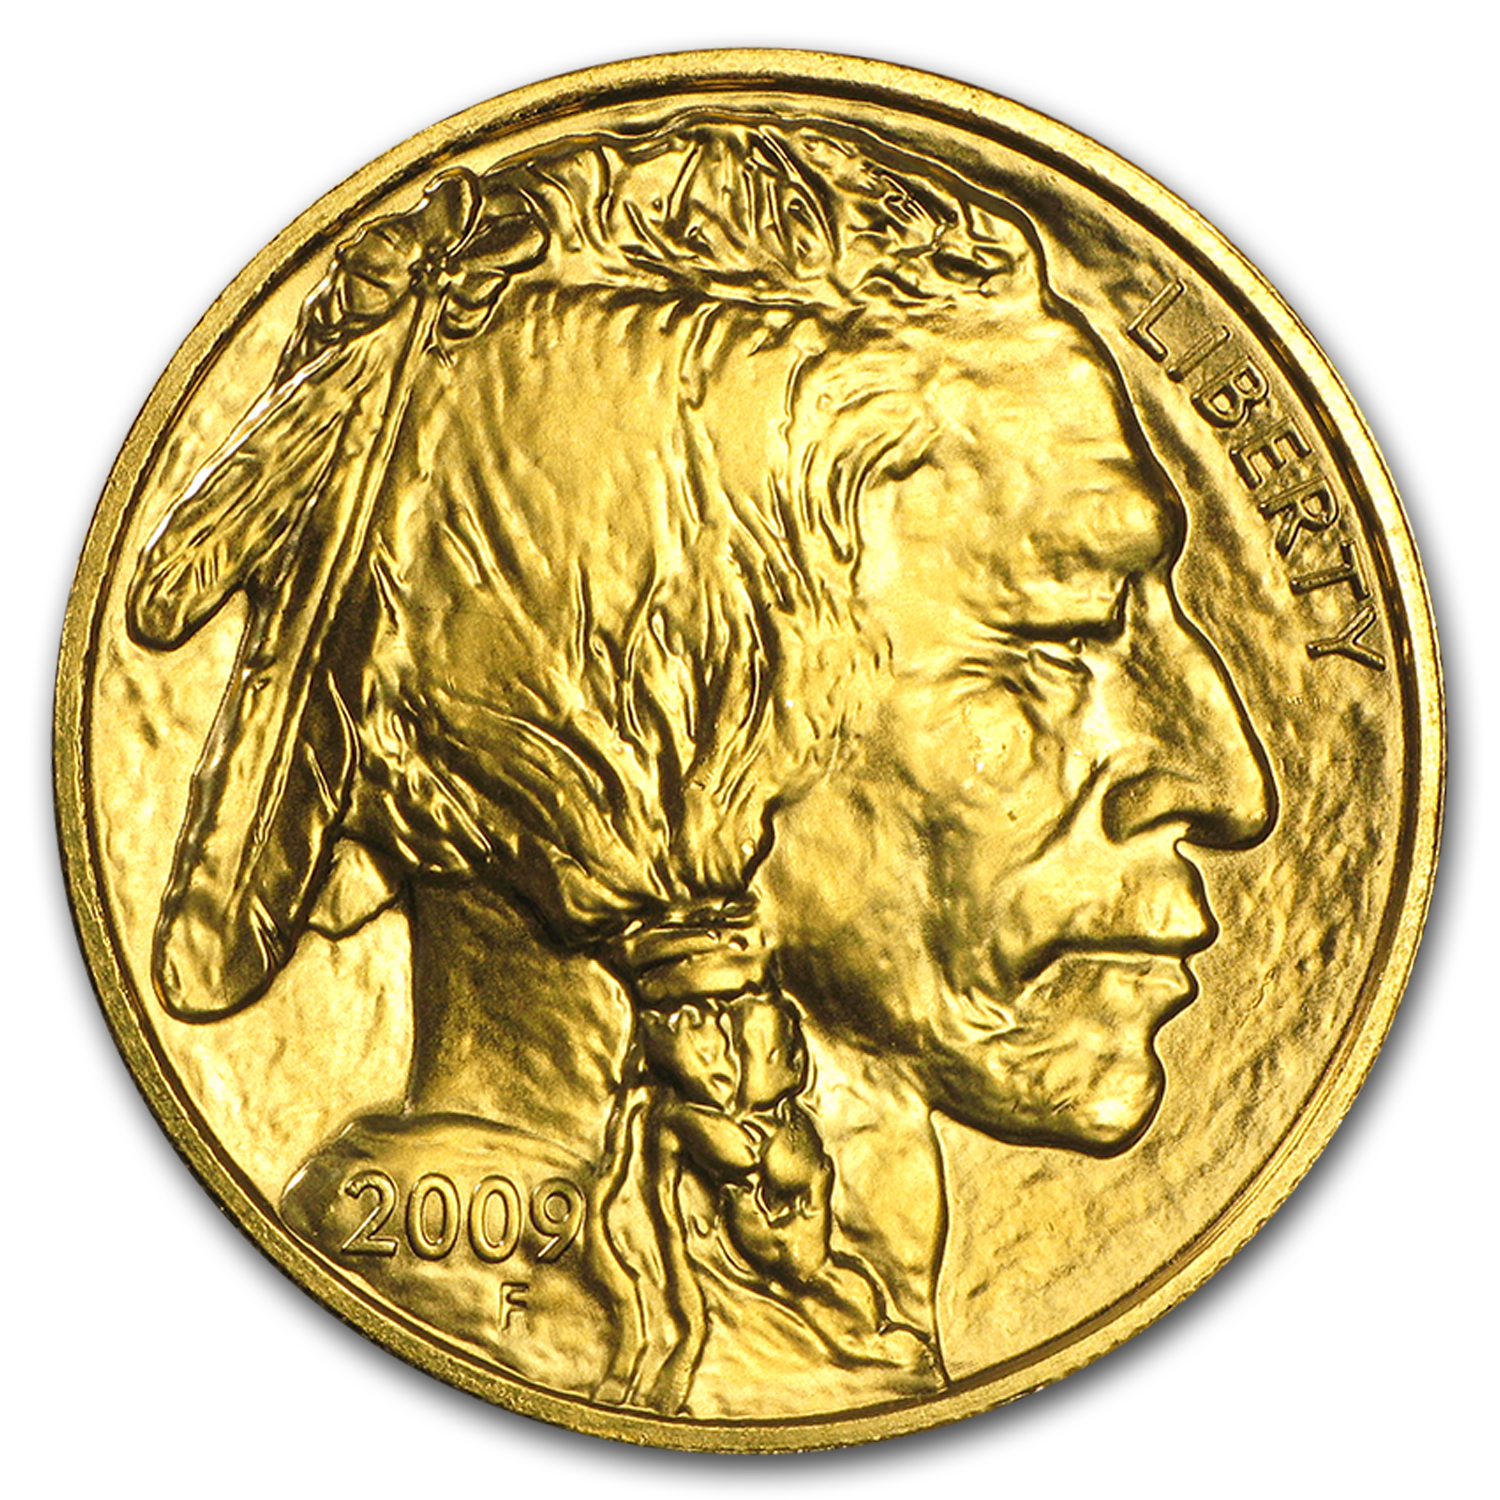 2009 1 oz Gold Buffalo BU